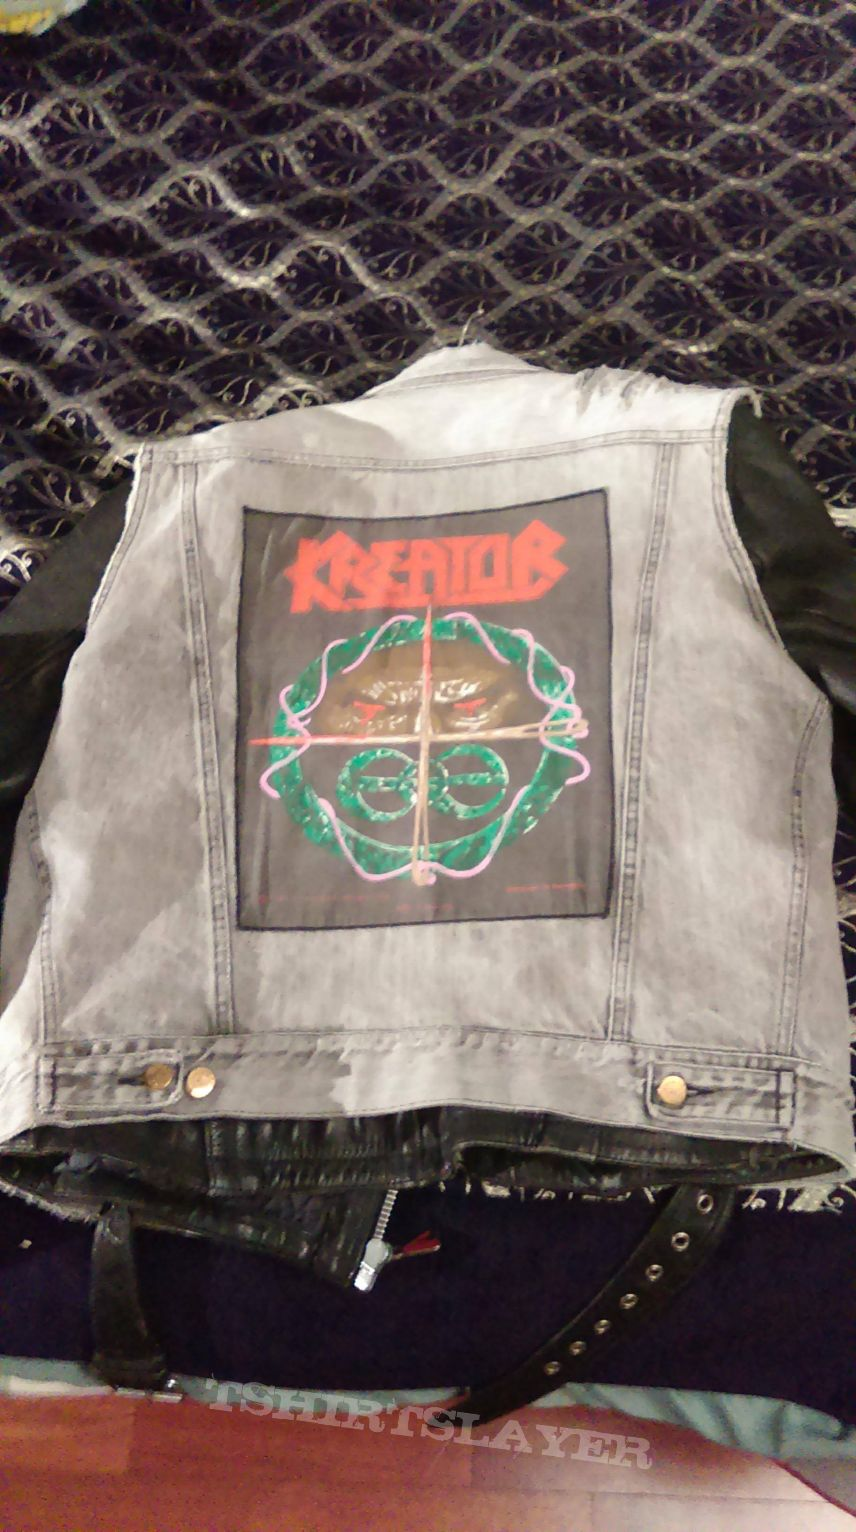 My early teenage Battle jacket